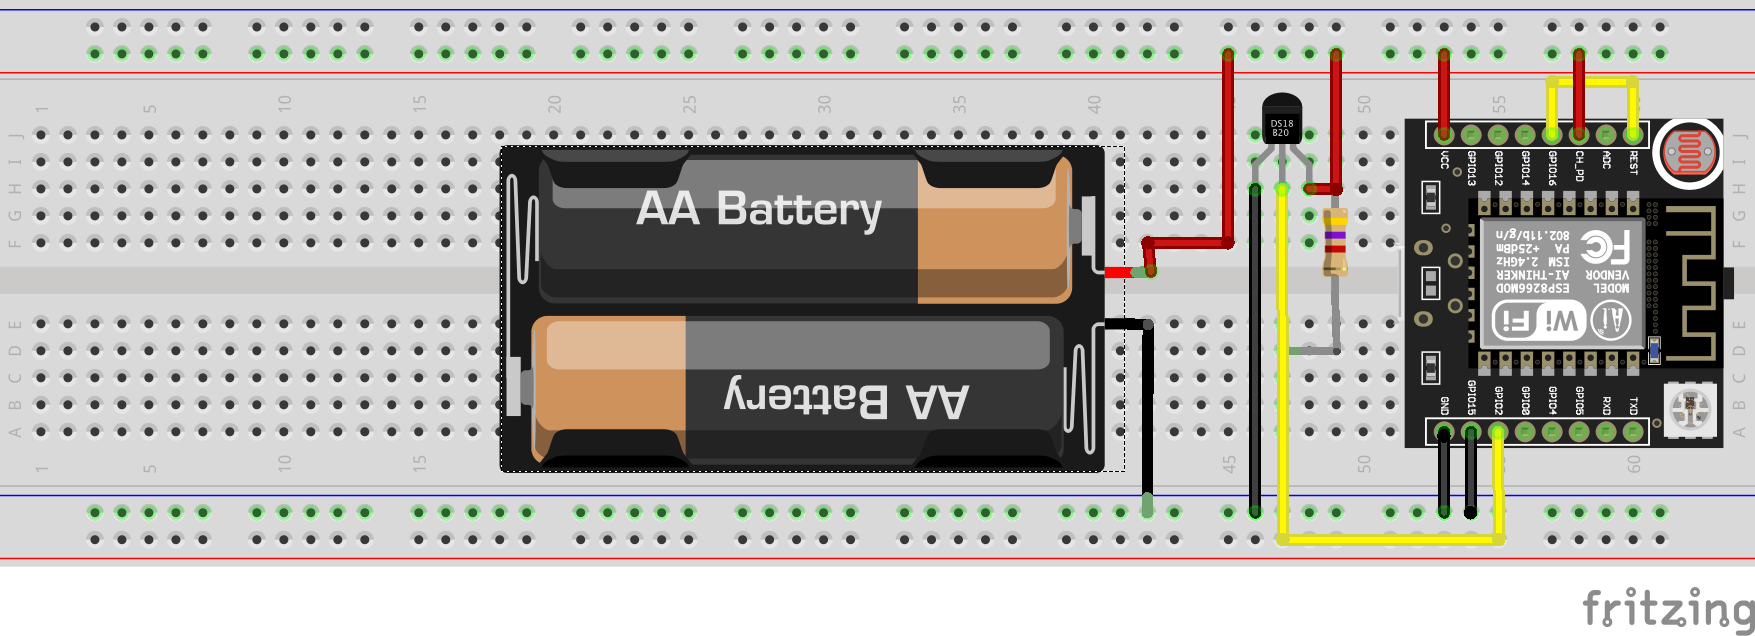 Battery-operated temperature monitor logging data directly to Google